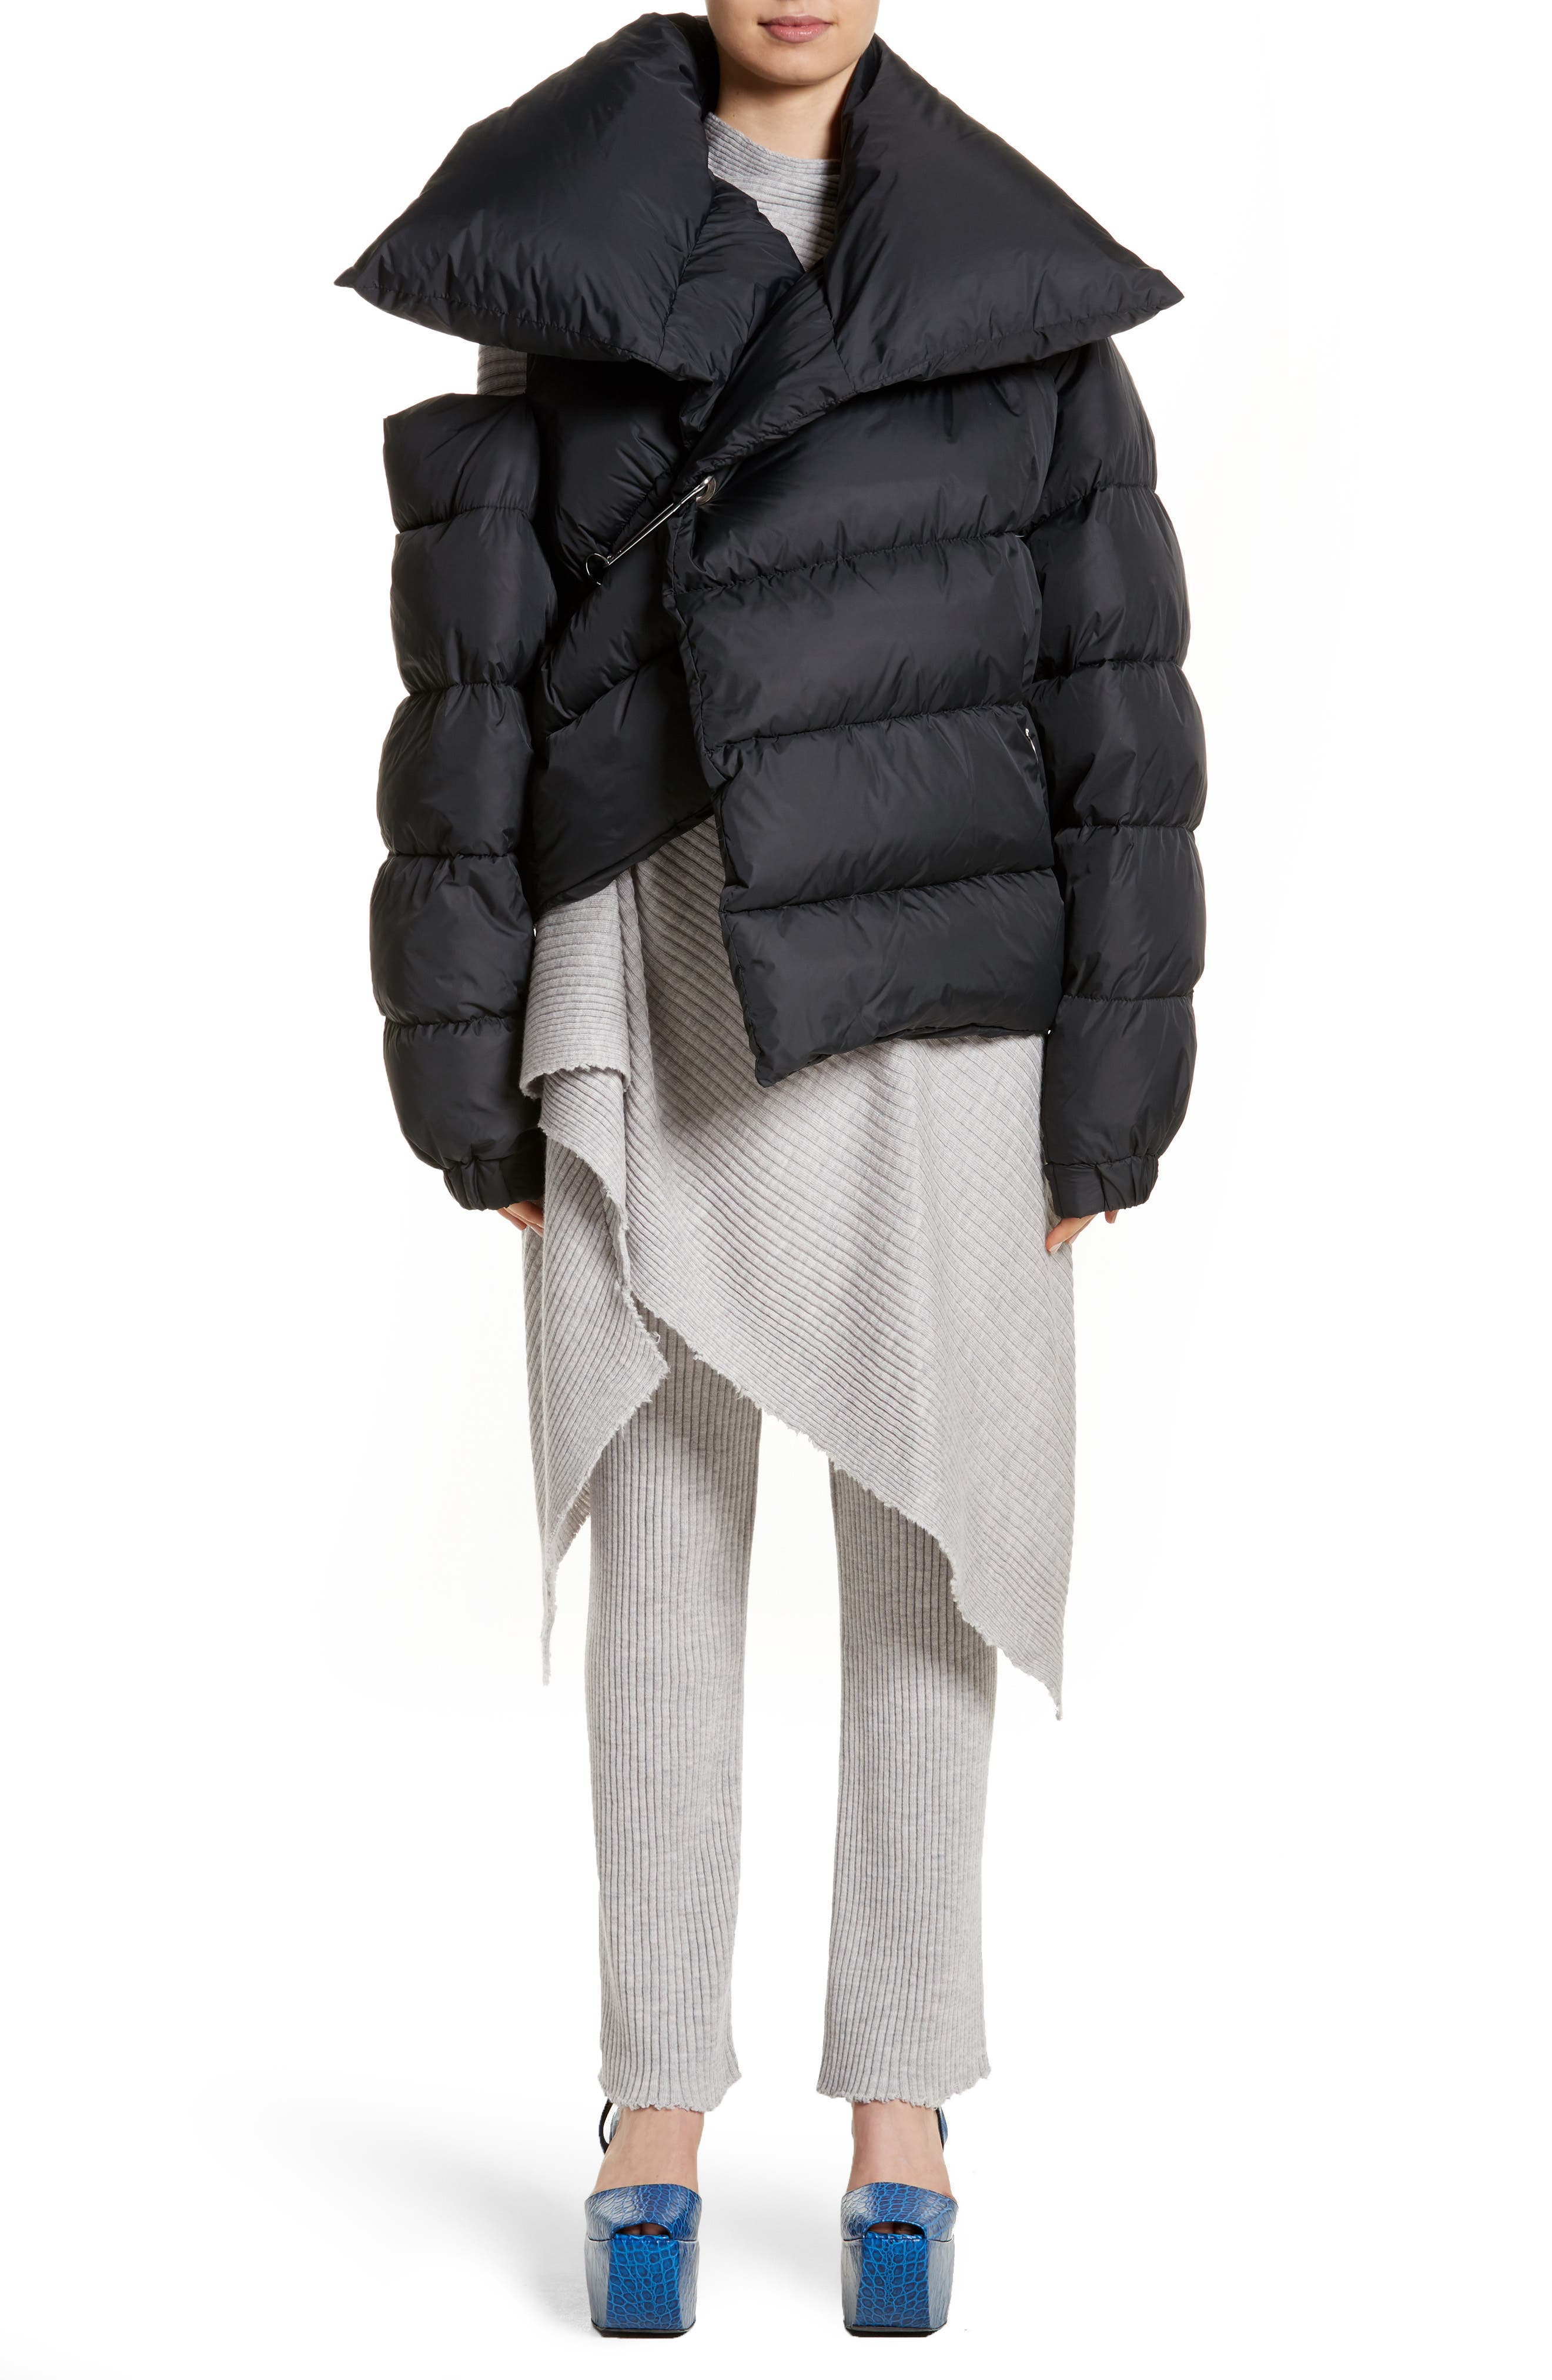 Marques'Almeida Asymmetrical Down Puffer Coat with Safety Pin Closure,                         Main,                         color, Black